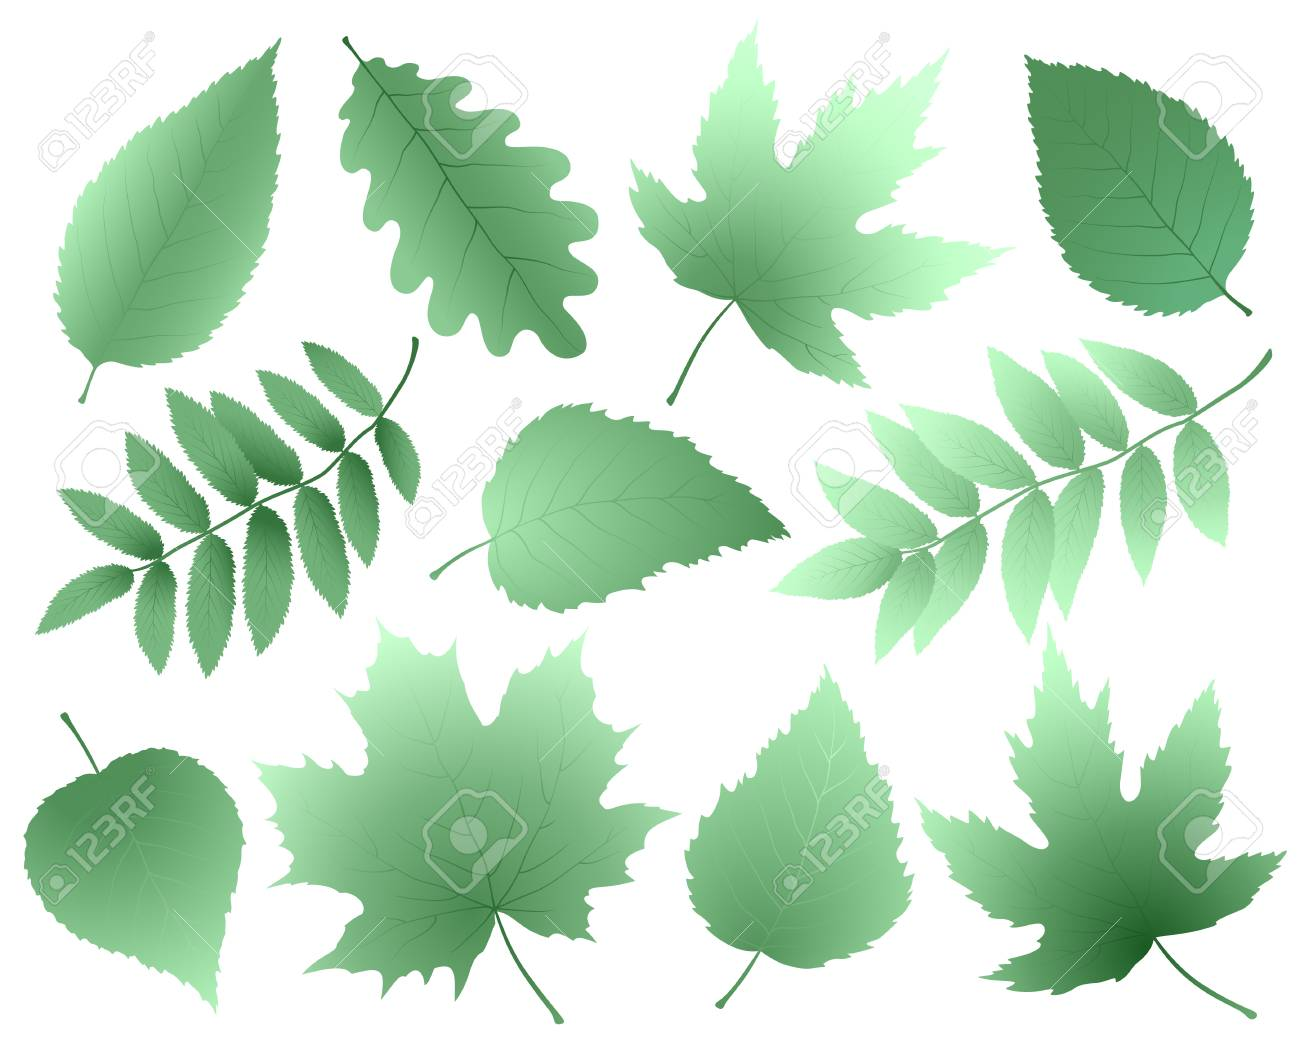 Leaves and branches silhouettes set - 95333413